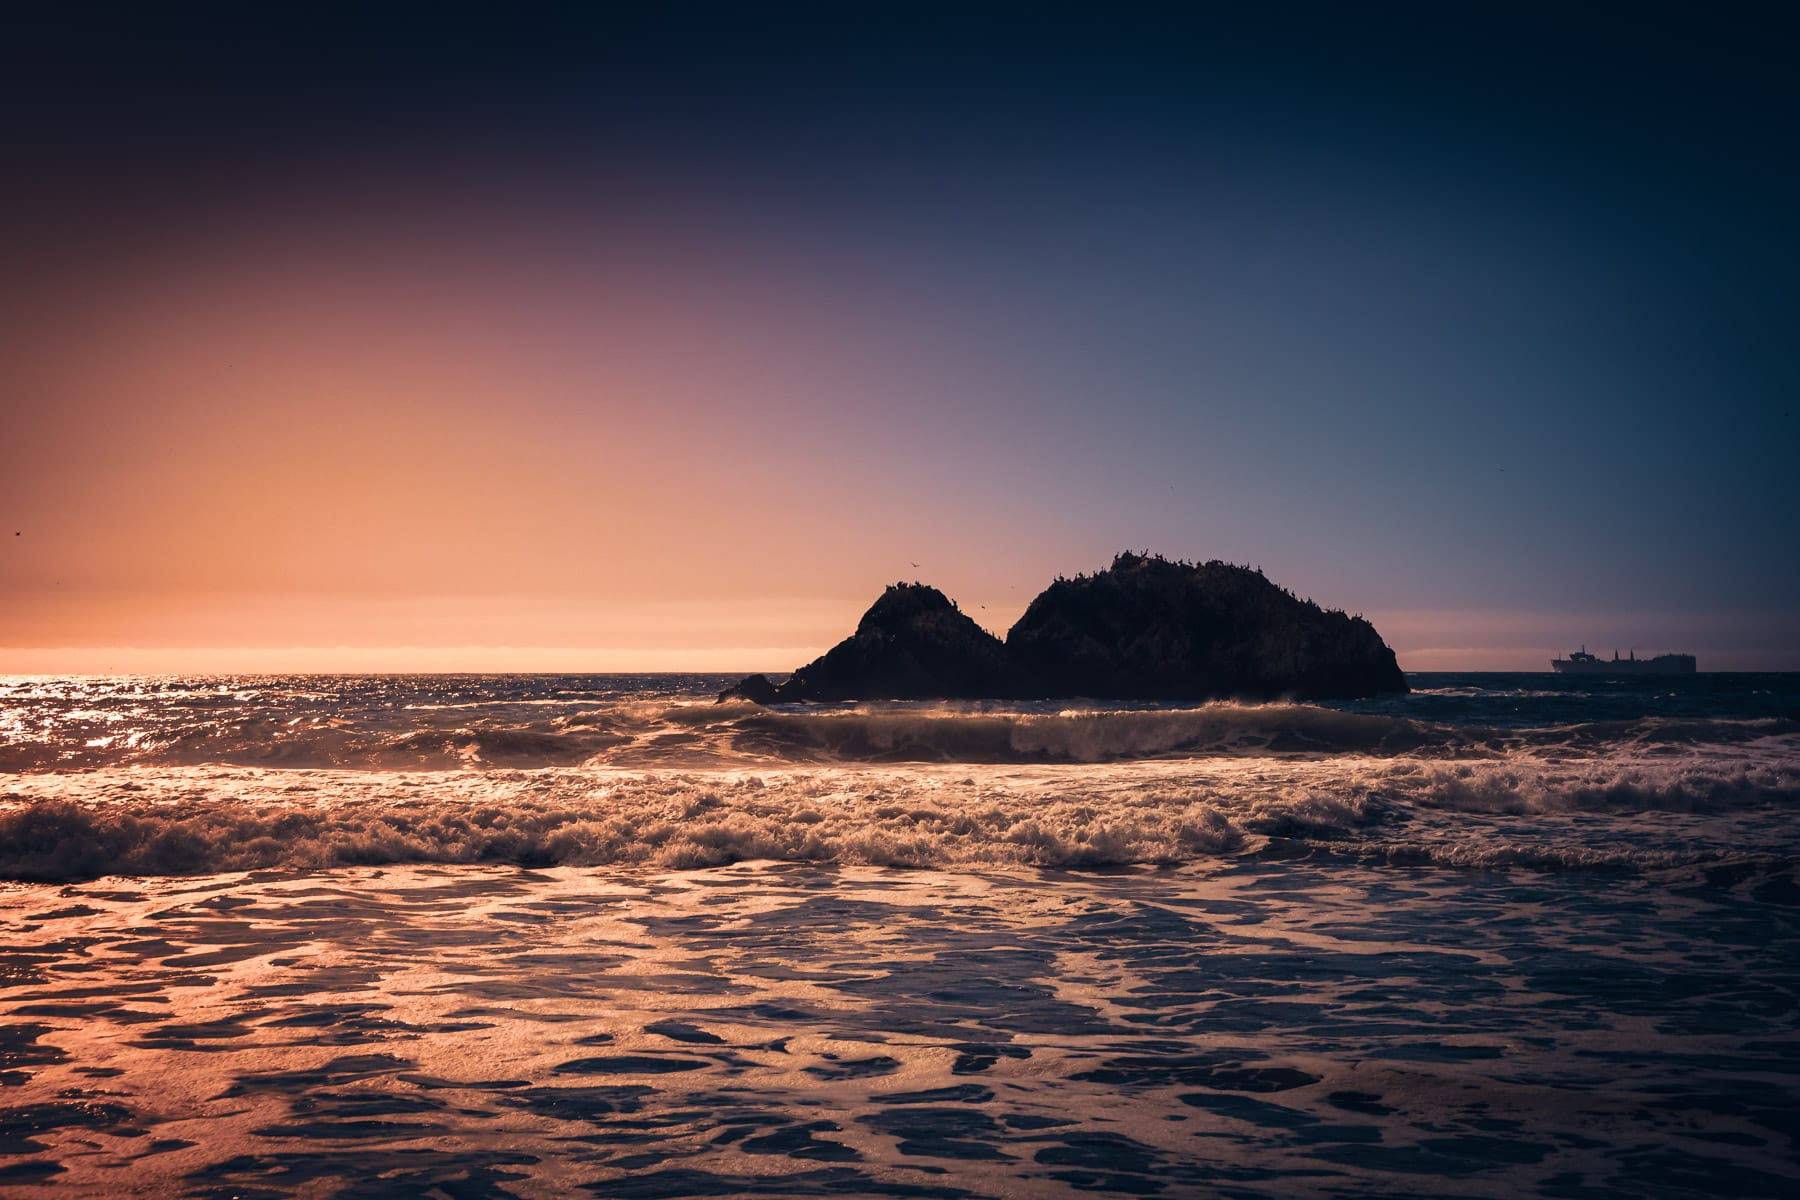 The sun sets on Seal Rocks, off the shore of Lands End, San Francisco.